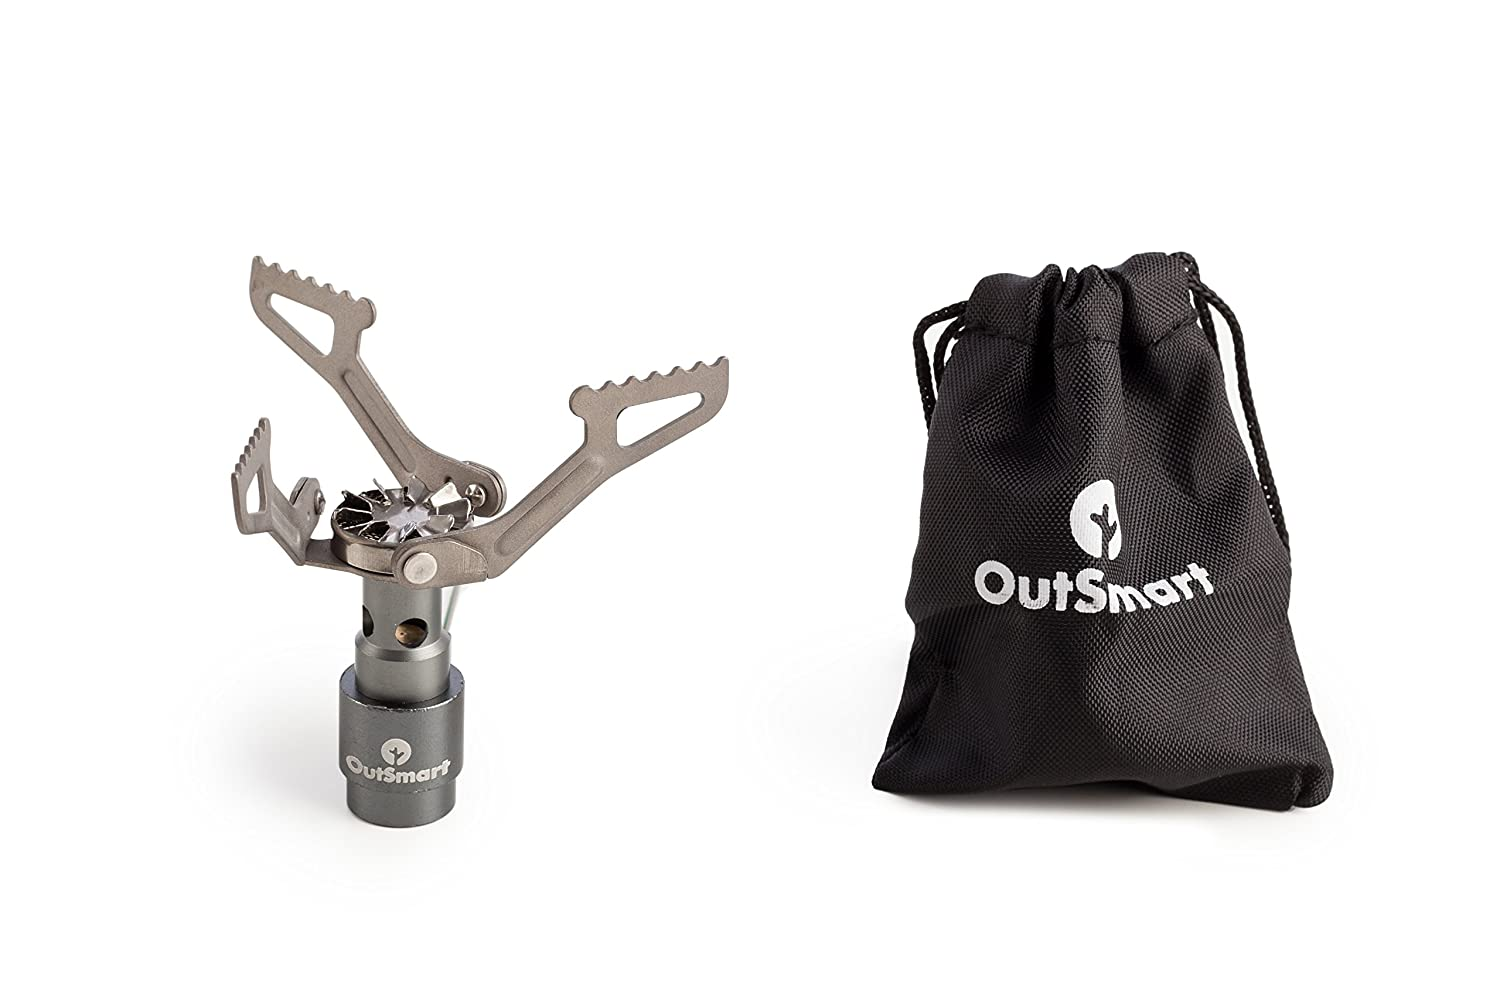 OutSmart Ultralight Titanium Gas Stove | Single Burner Portable Stove for Backpacking, Outdoor Camping and Hiking | Because a House While Traveling ...